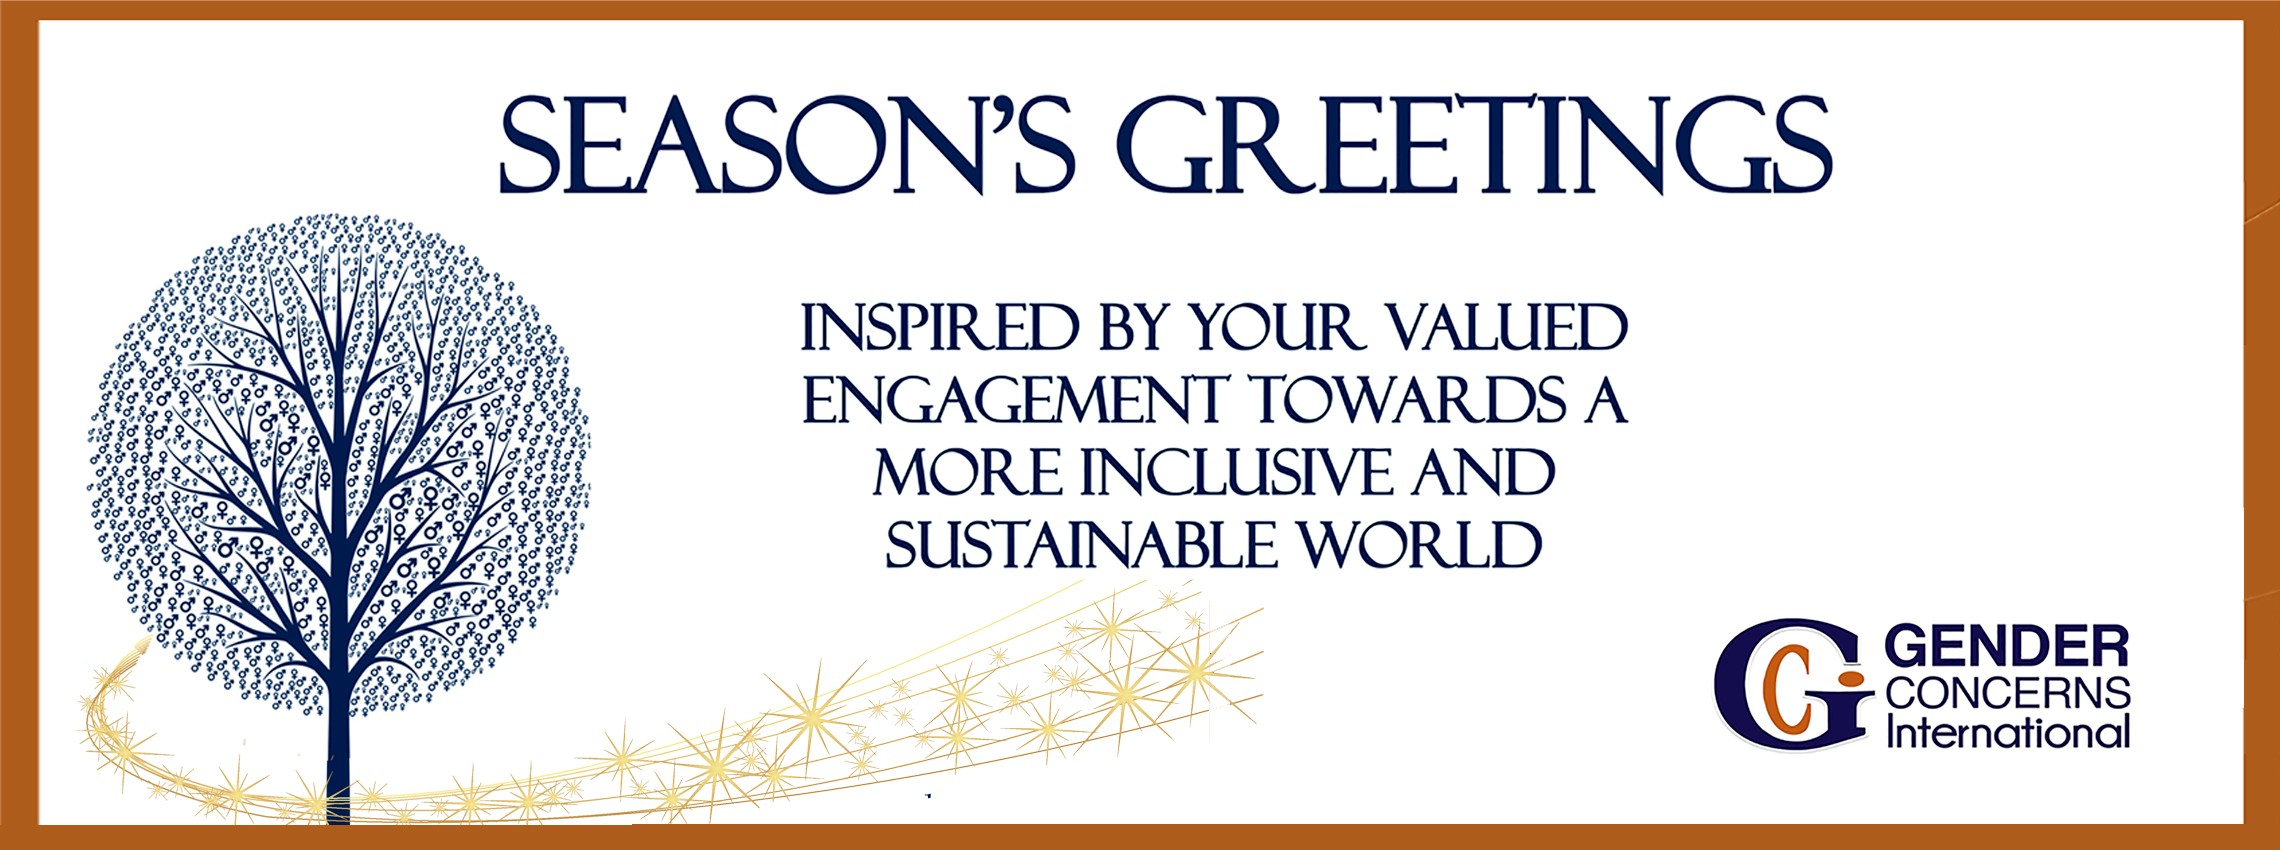 seasons-greetings-from-gender-concerns-international